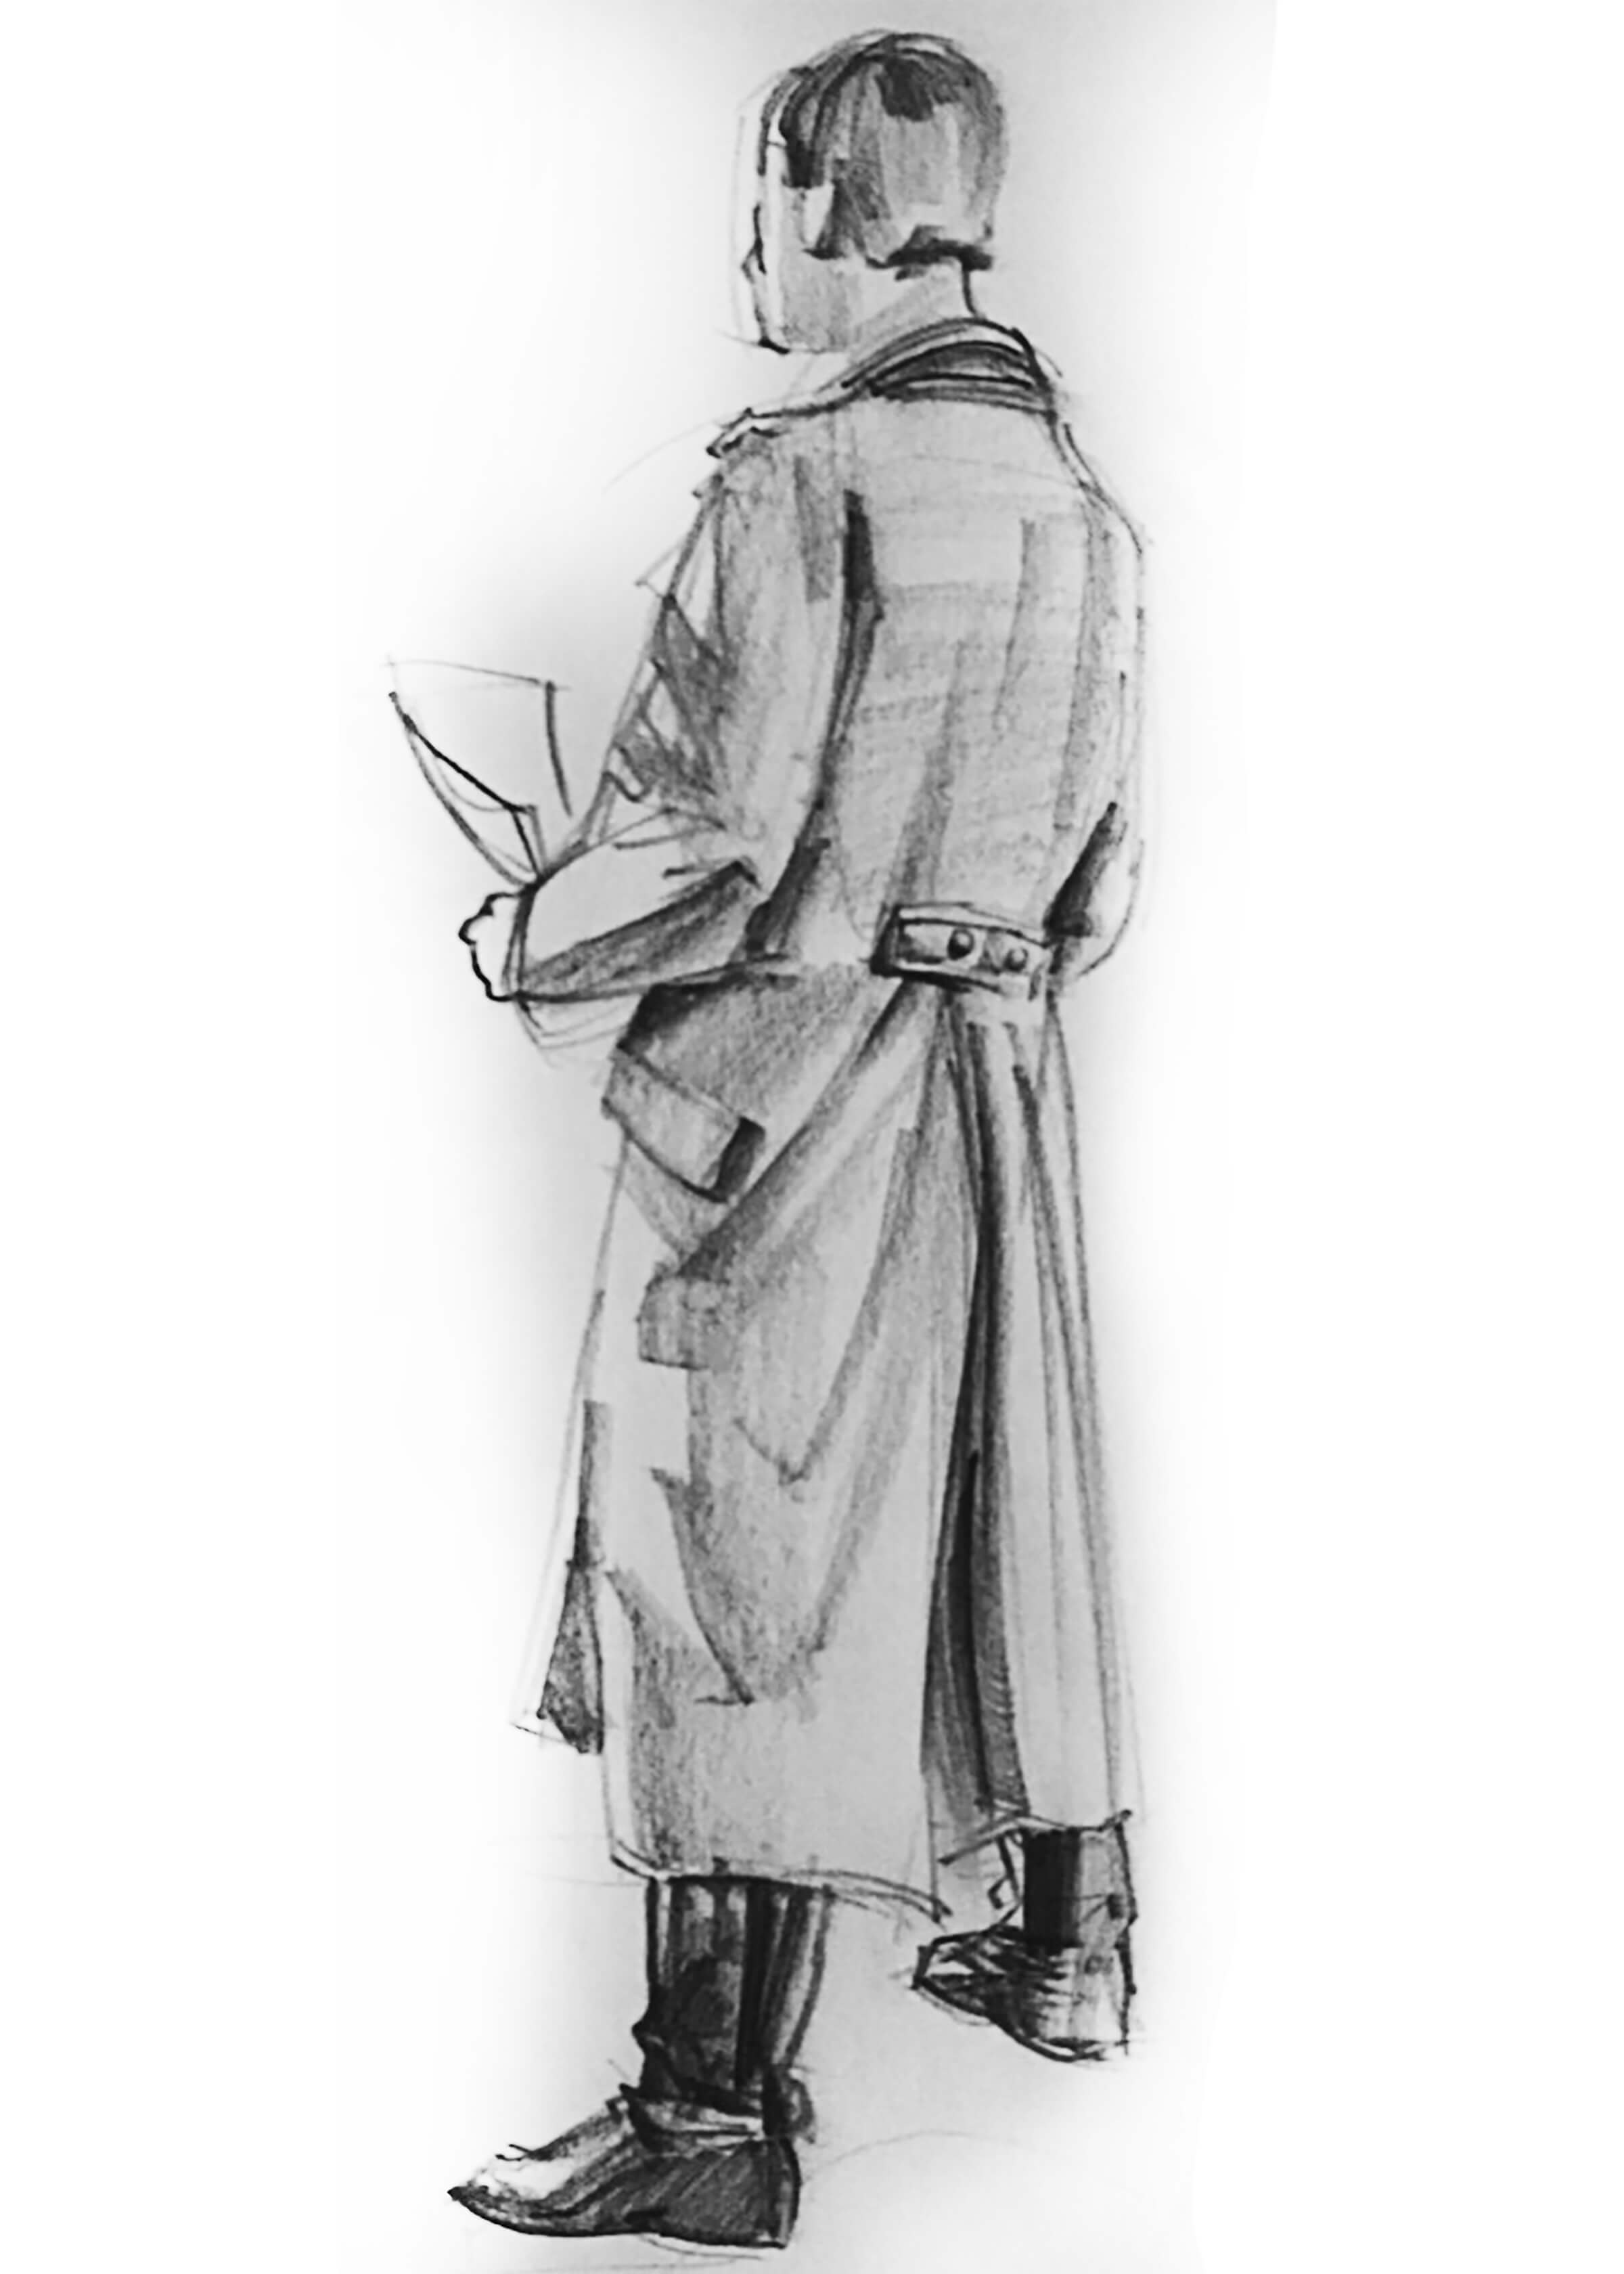 A sketch of a man in a raincoat with his back to the artist